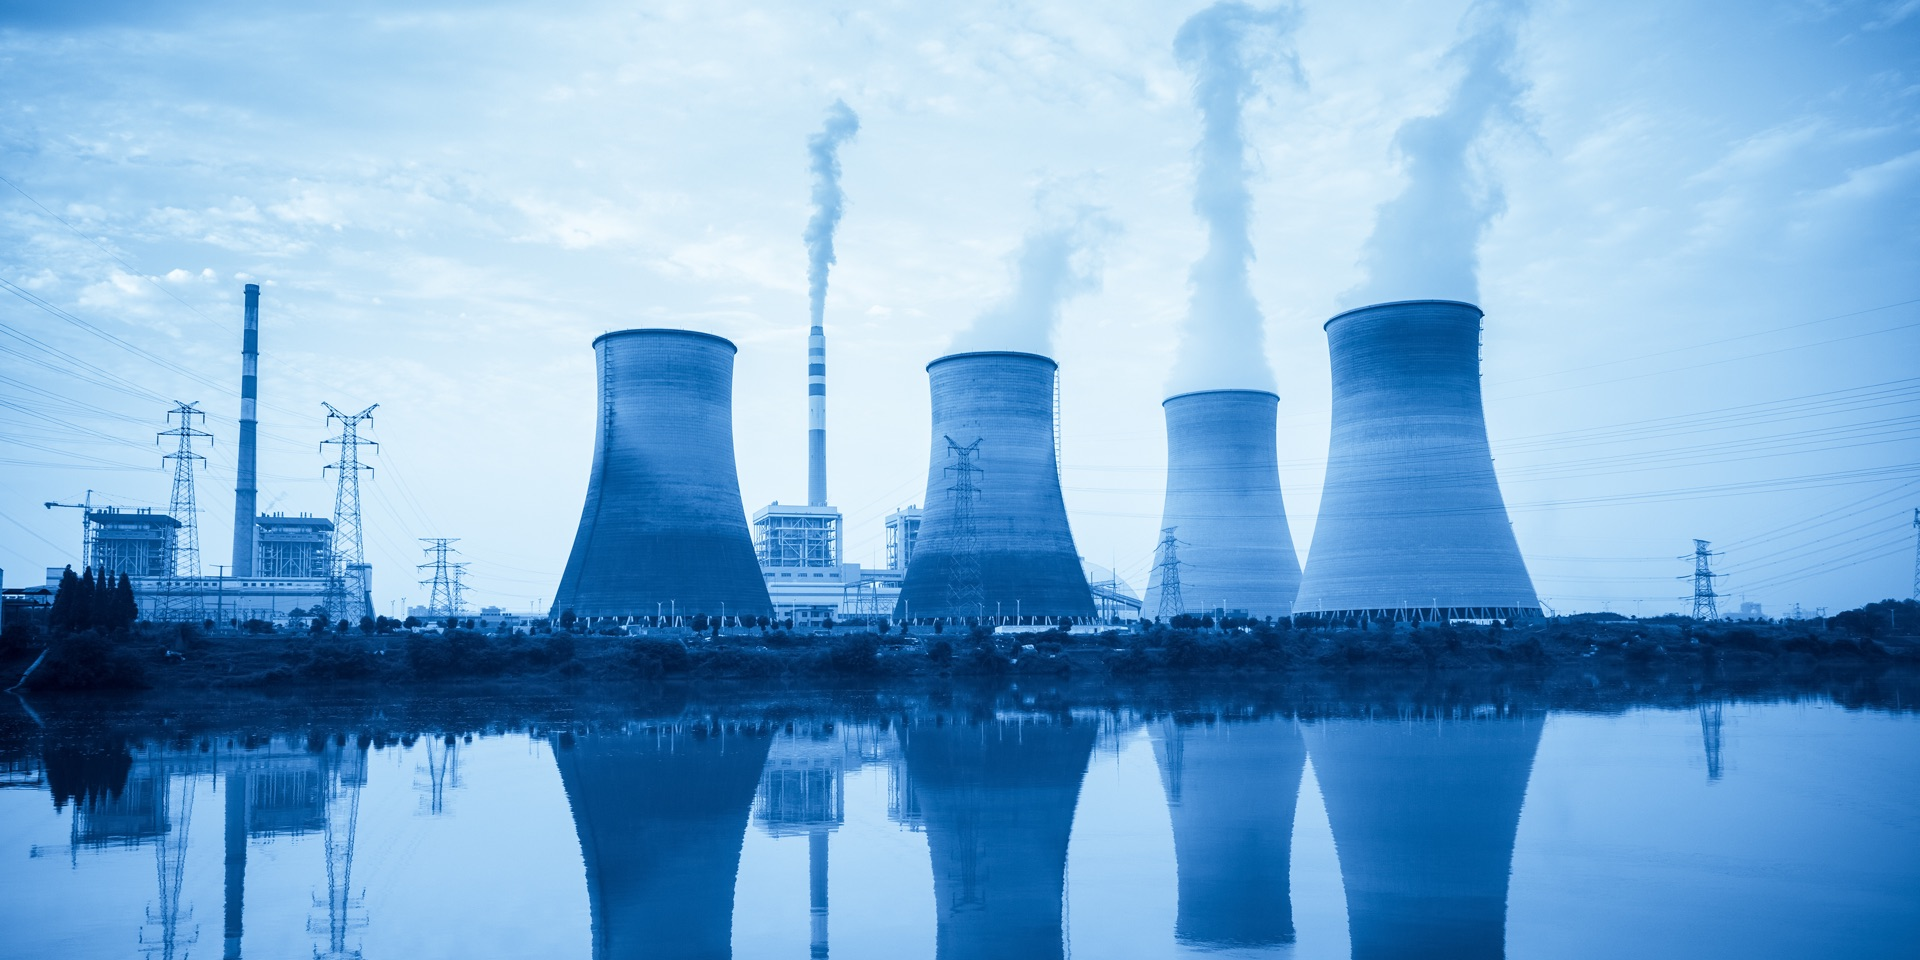 Predicting Vibration Crises in Nuclear Power Plants